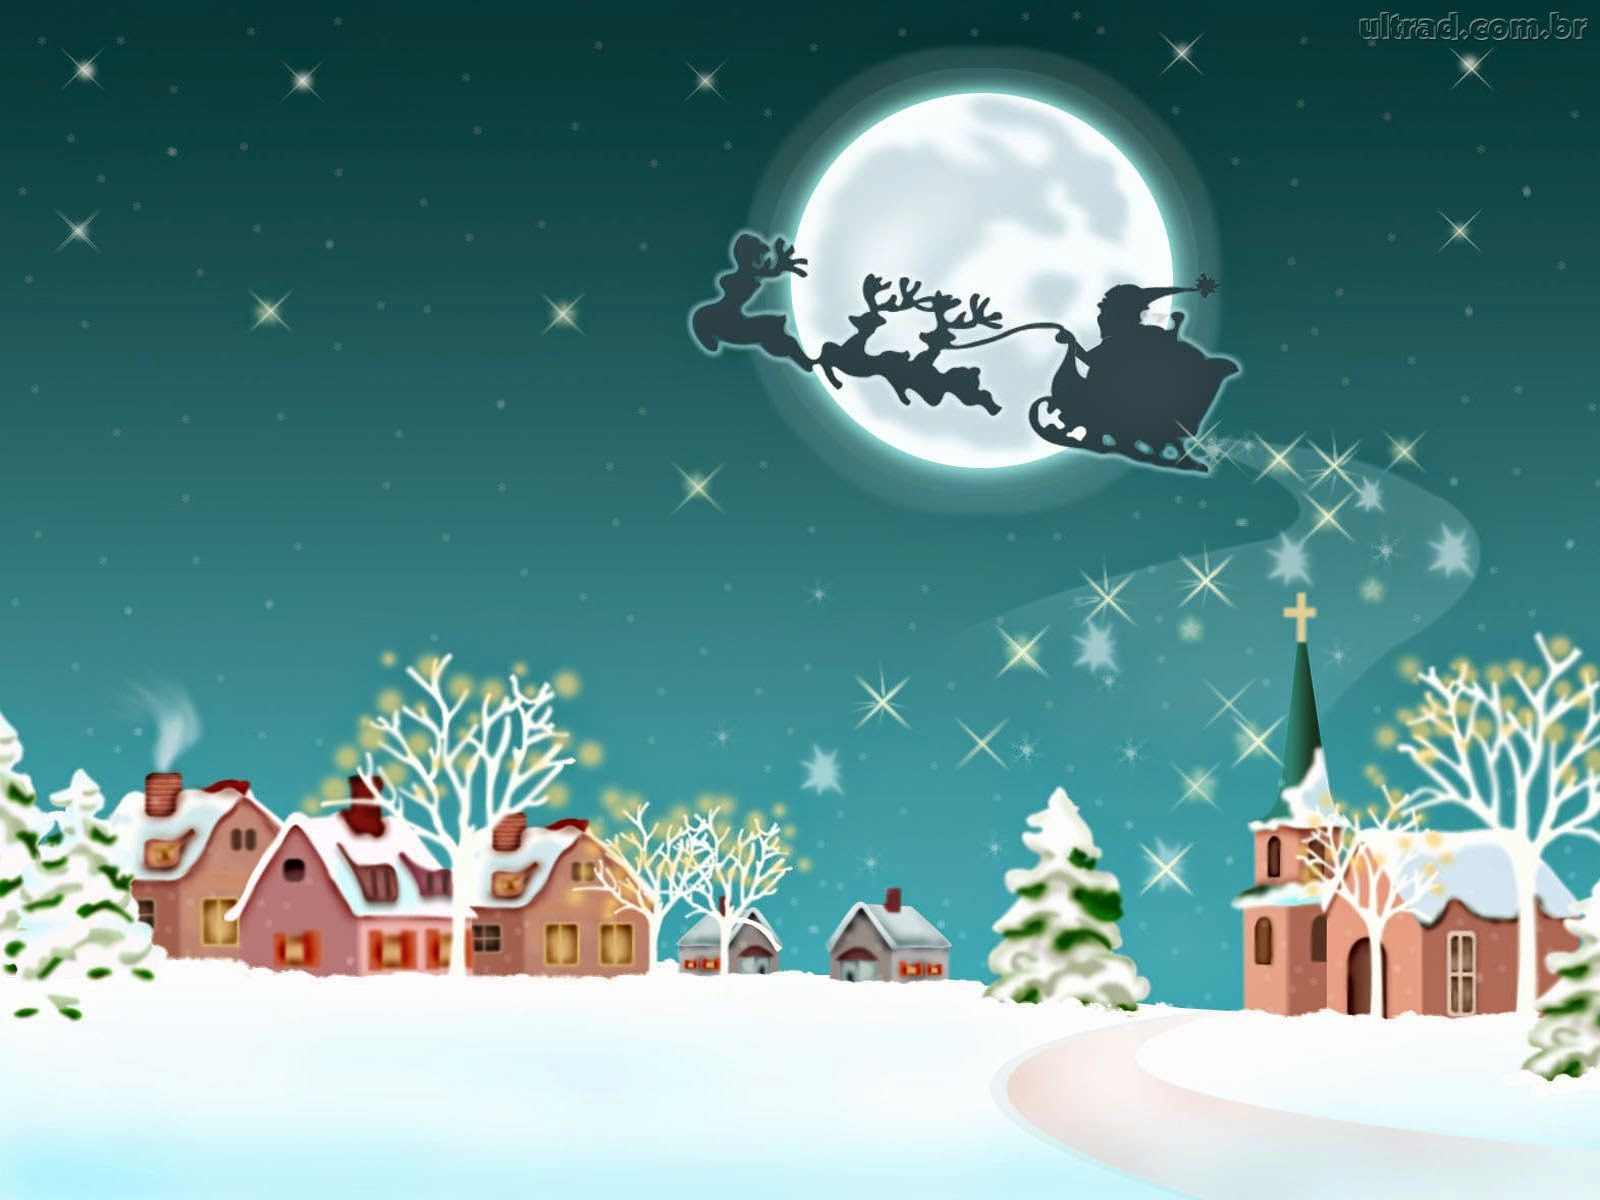 Santa-flying-in-his-sleigh-over-snow-town-cartoon-image-picture-for-kids.jpg